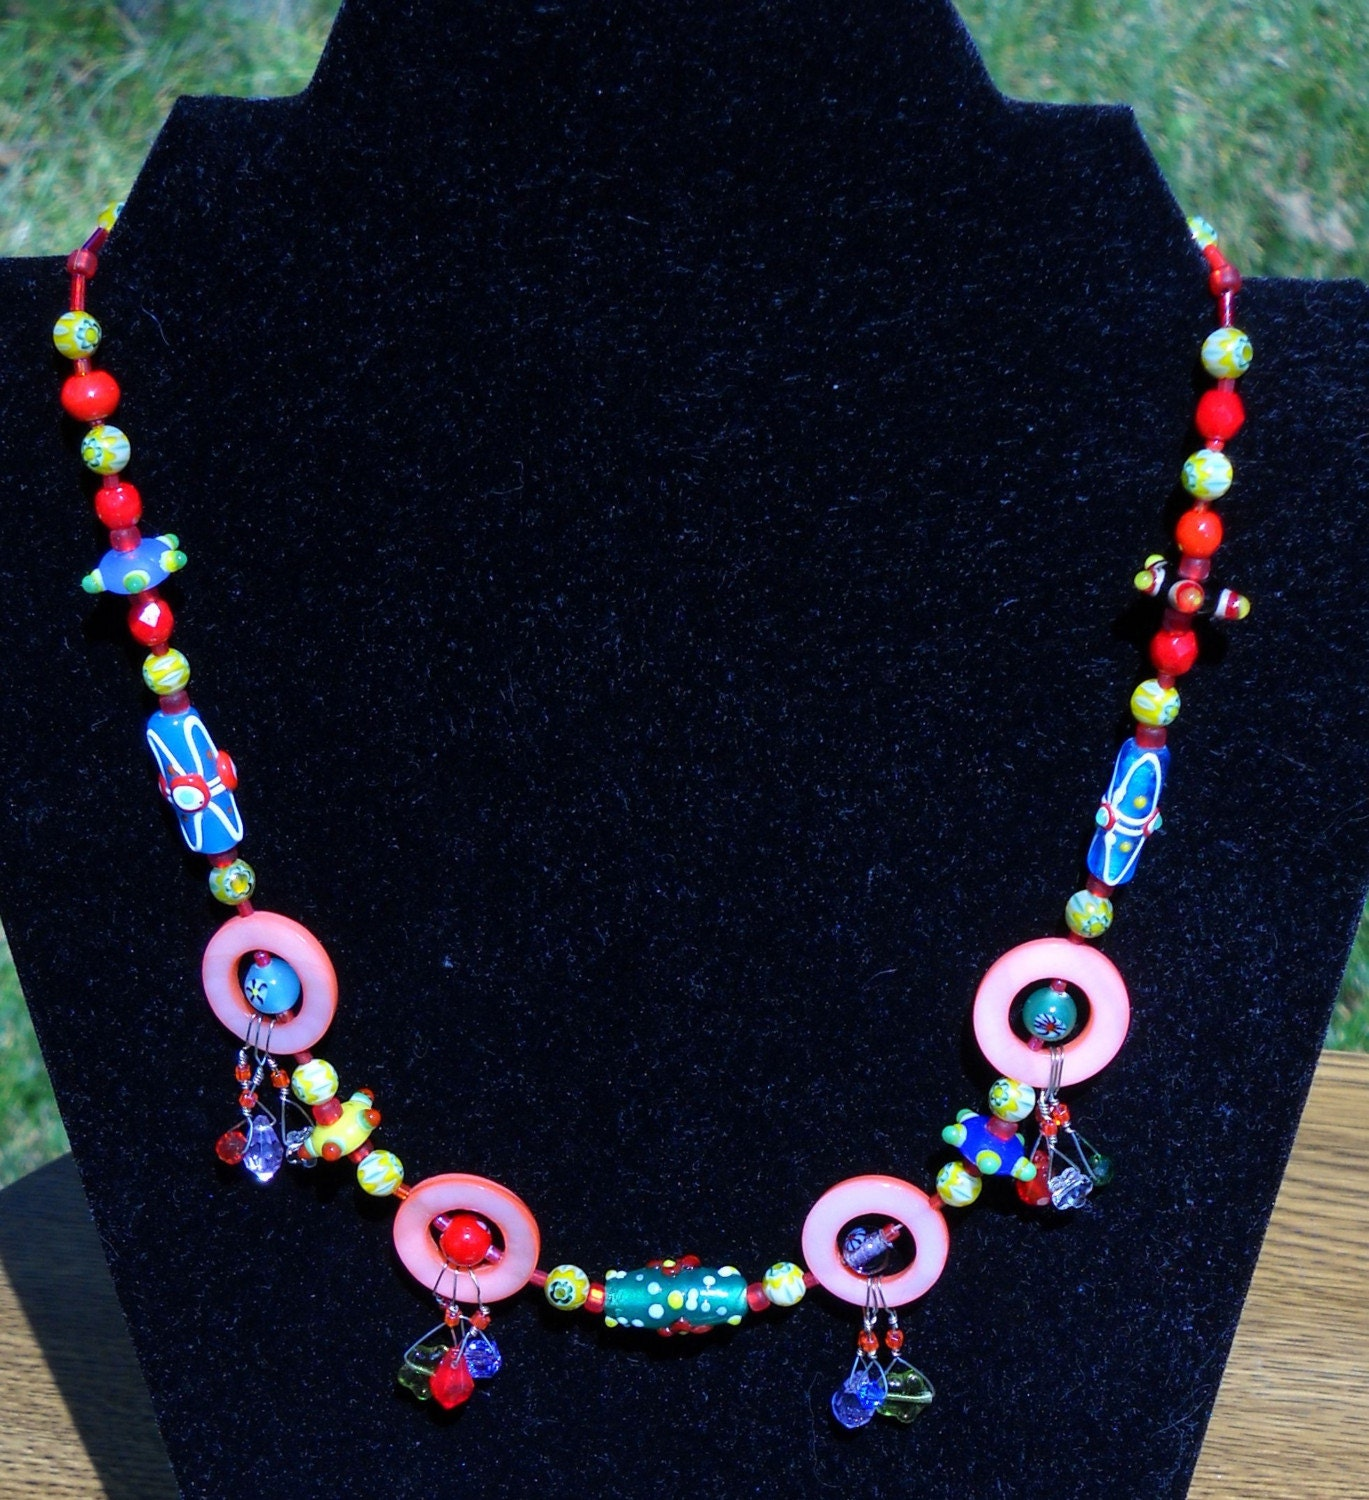 Fiesta 3 Planetary Party Necklace